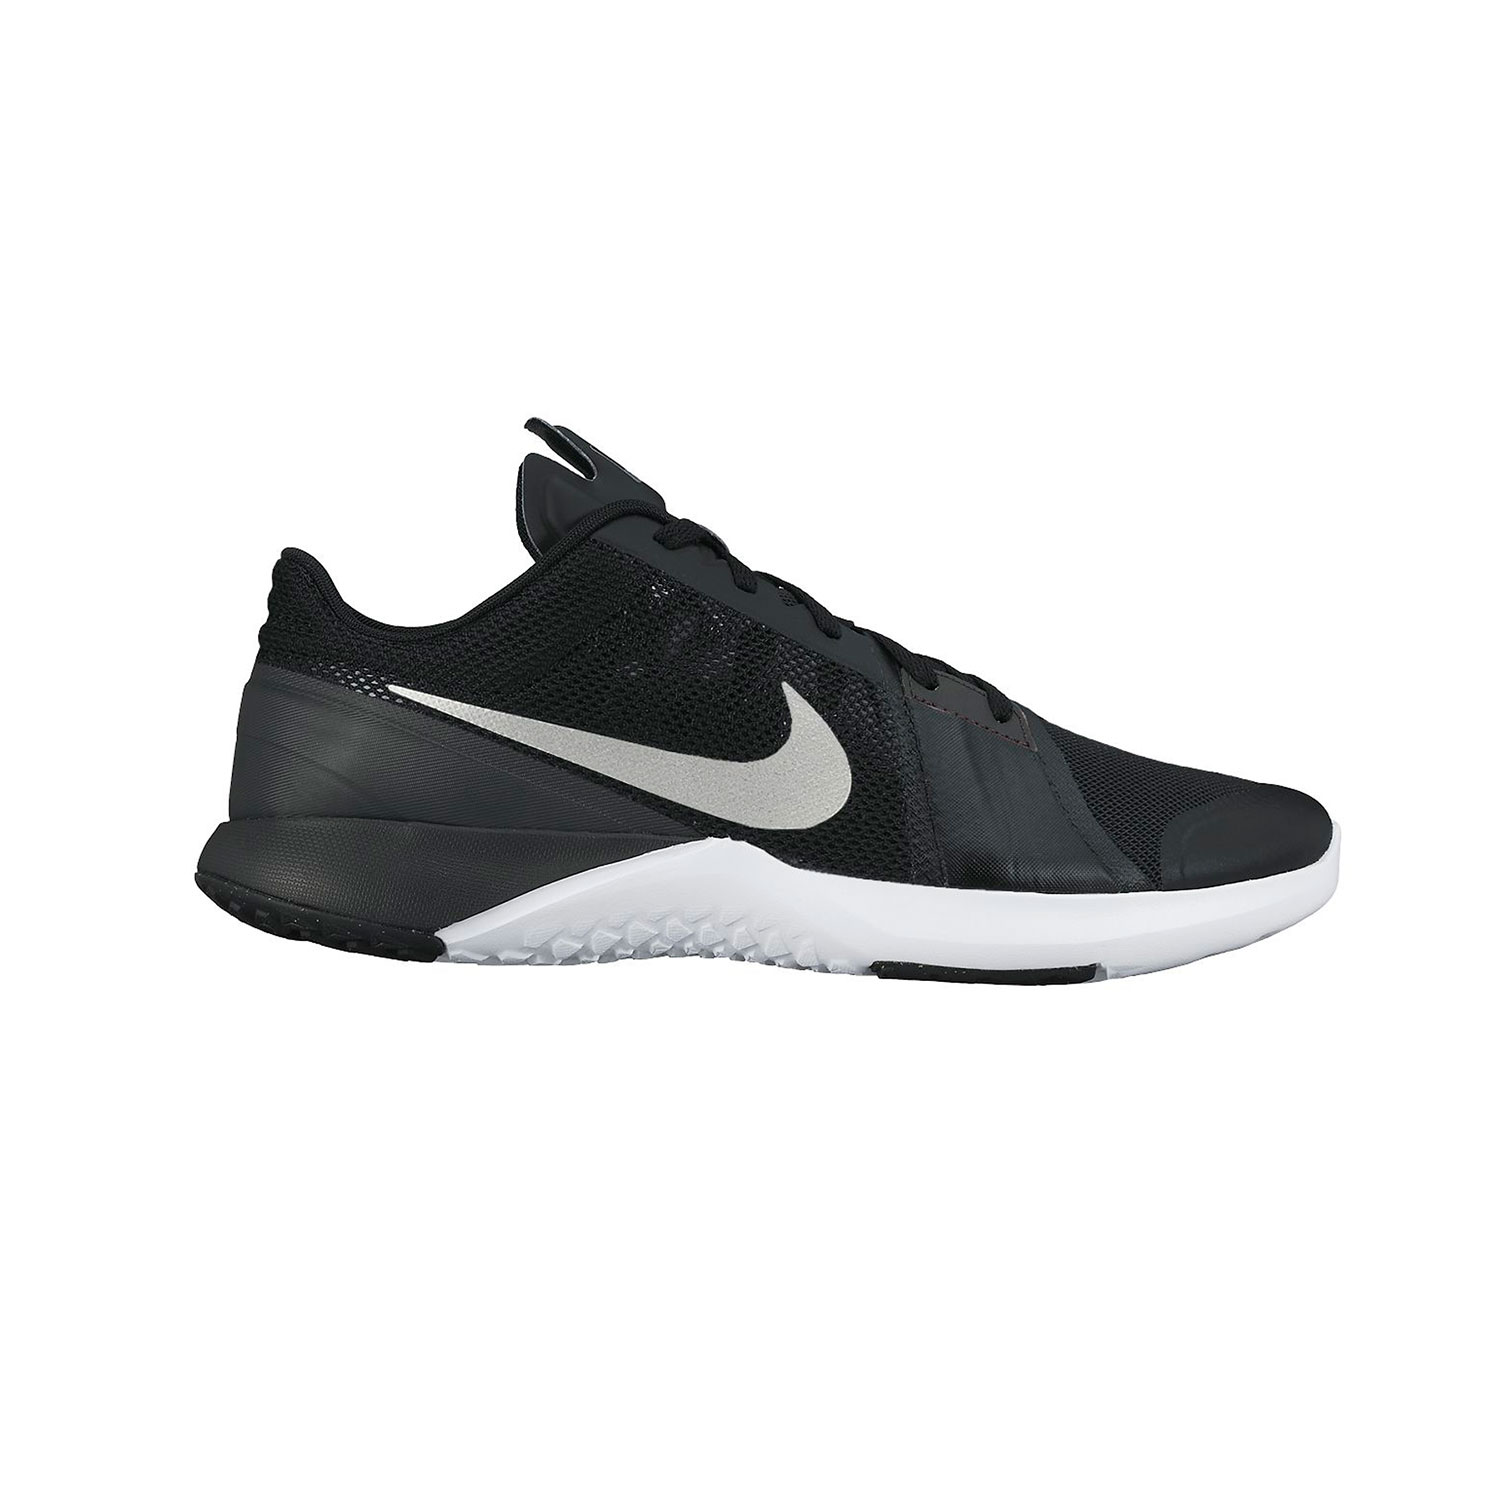 Nike FS Lite Trainer 3 Training Shoe